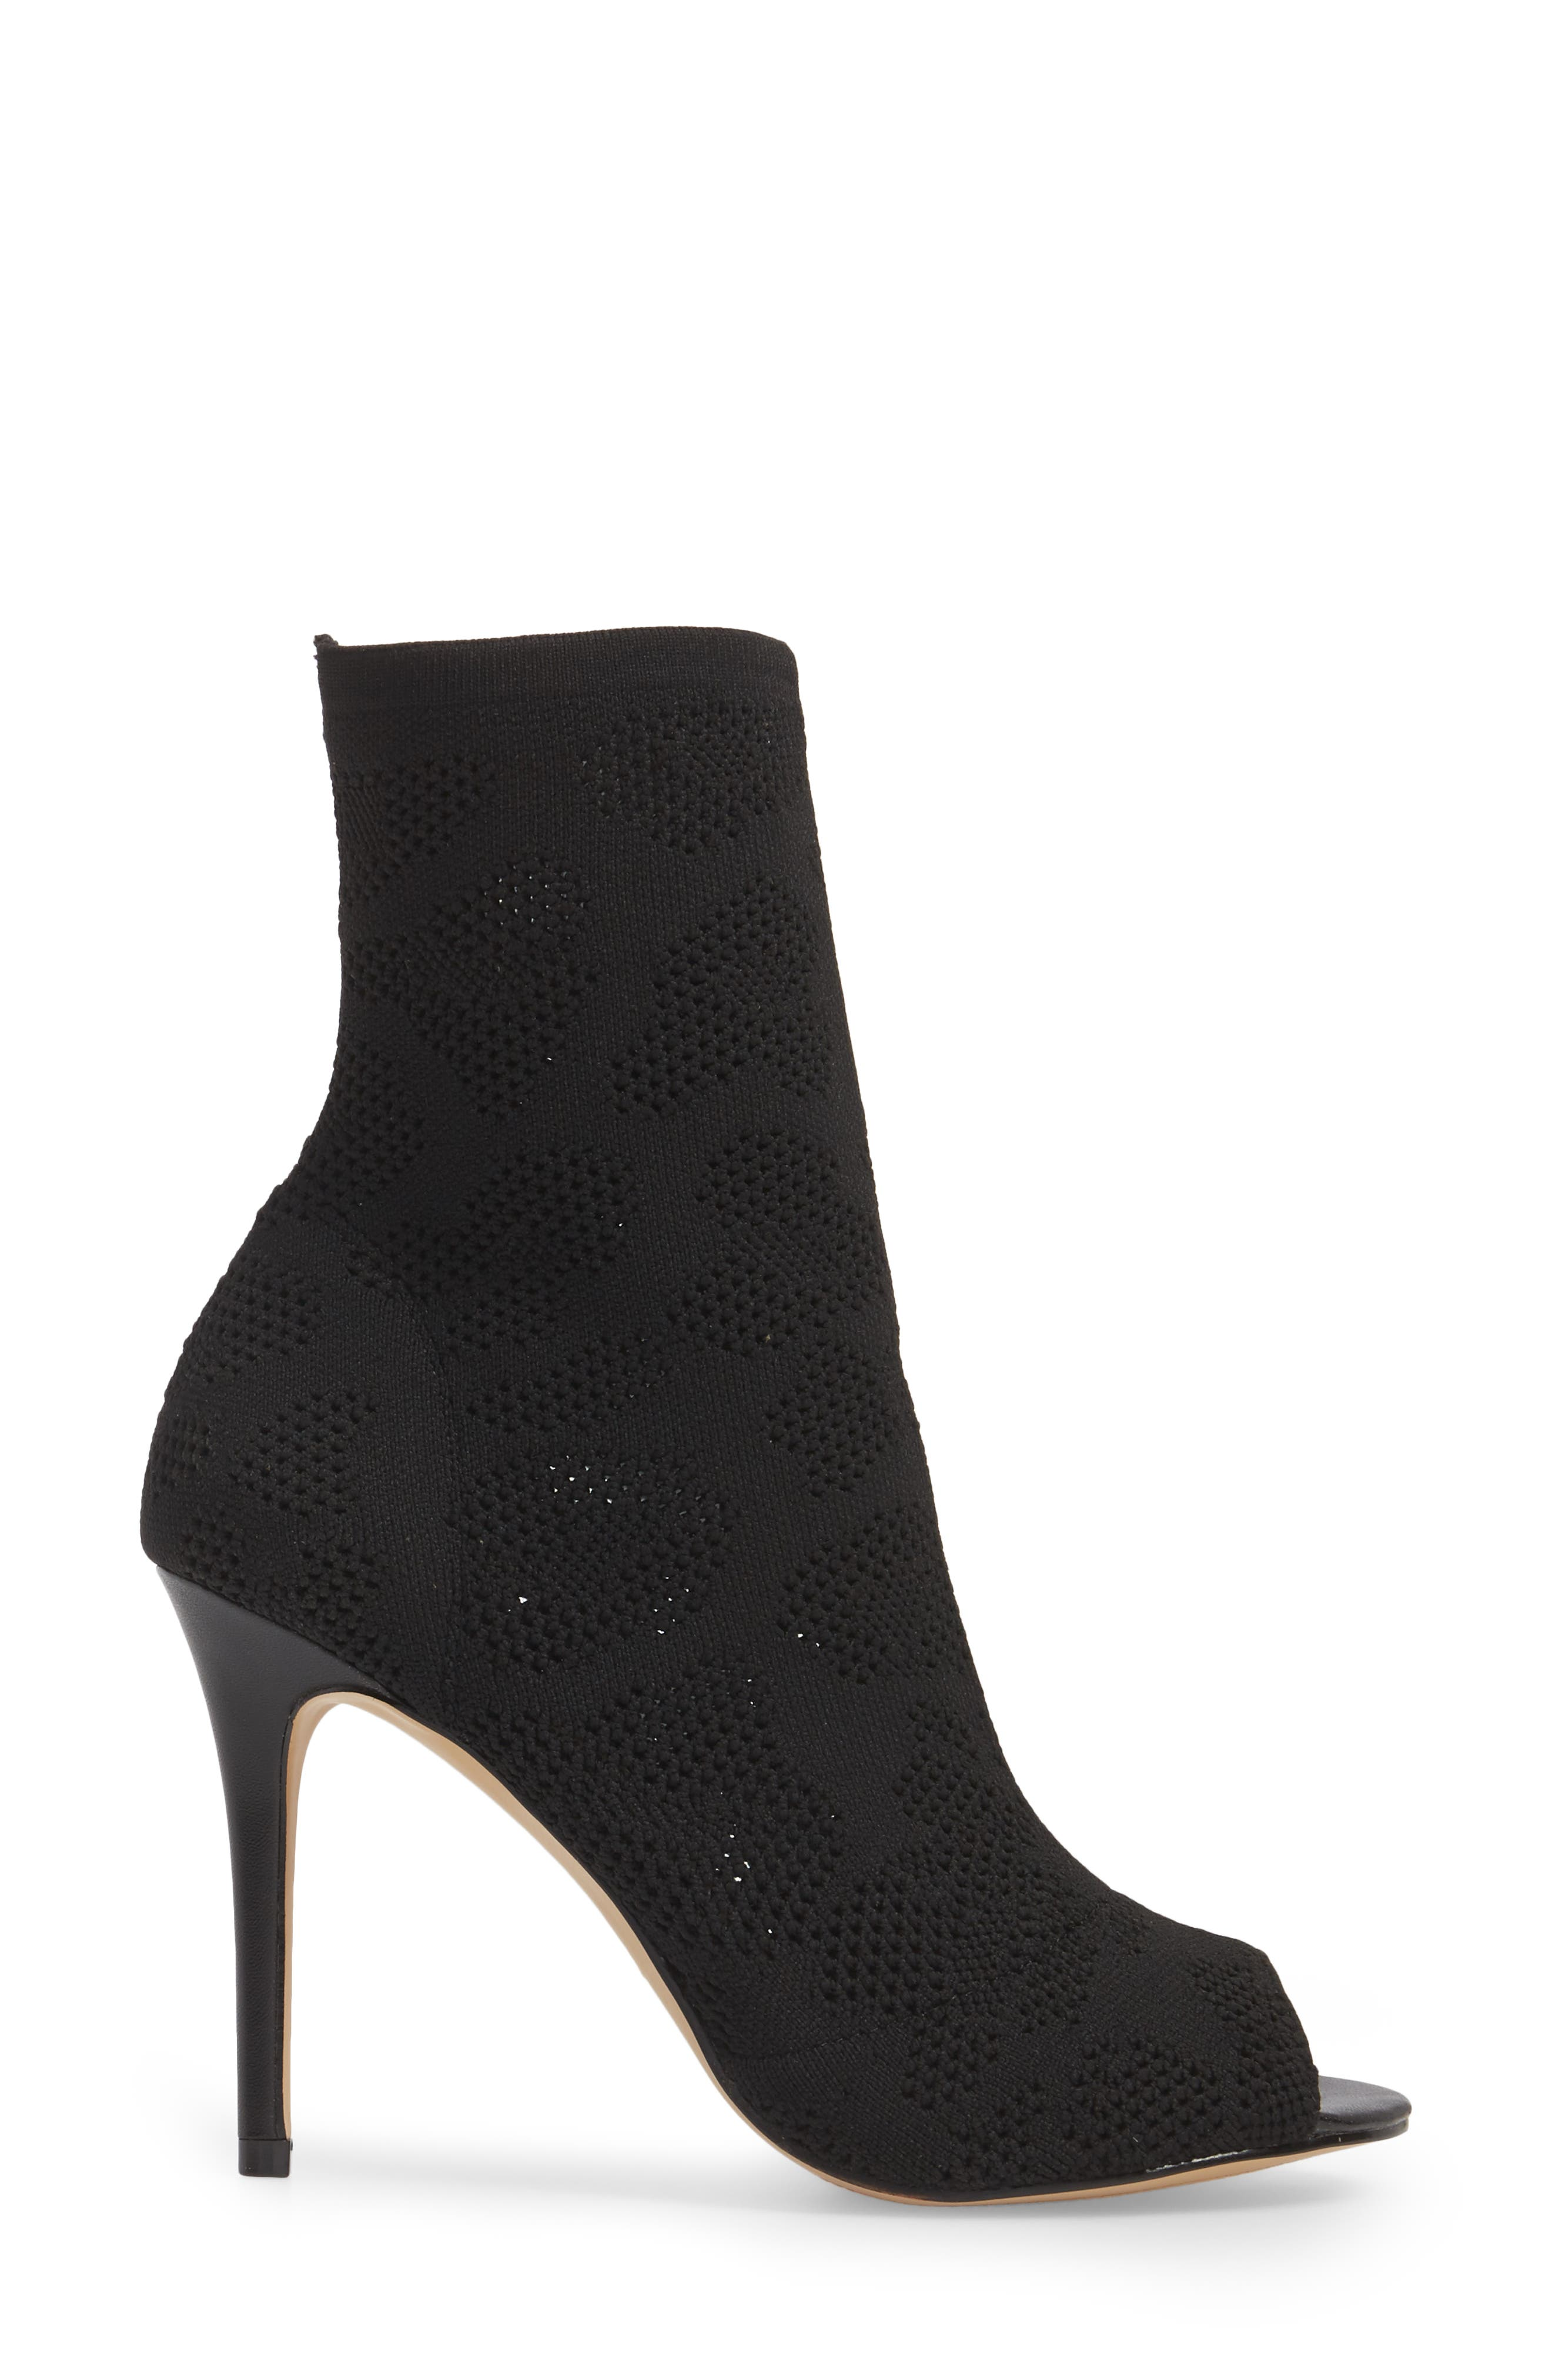 Ranger Sock Knit Open Toe Bootie,                             Alternate thumbnail 3, color,                             Black Stretch Fabric